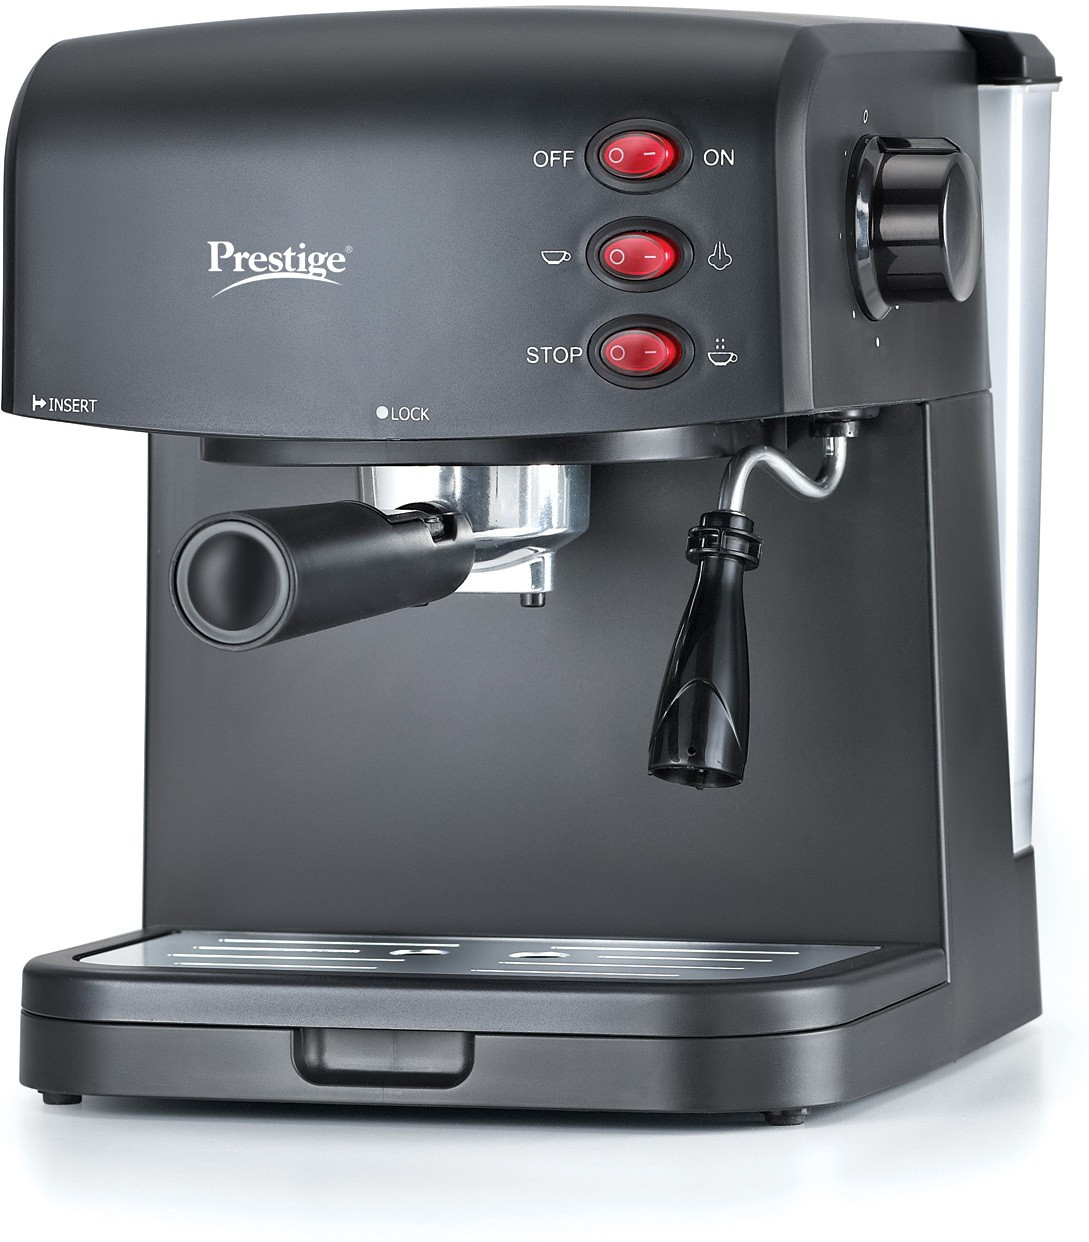 Prestige 41853 4 cups Coffee Maker Price in India - Buy Prestige 41853 4 cups Coffee Maker ...